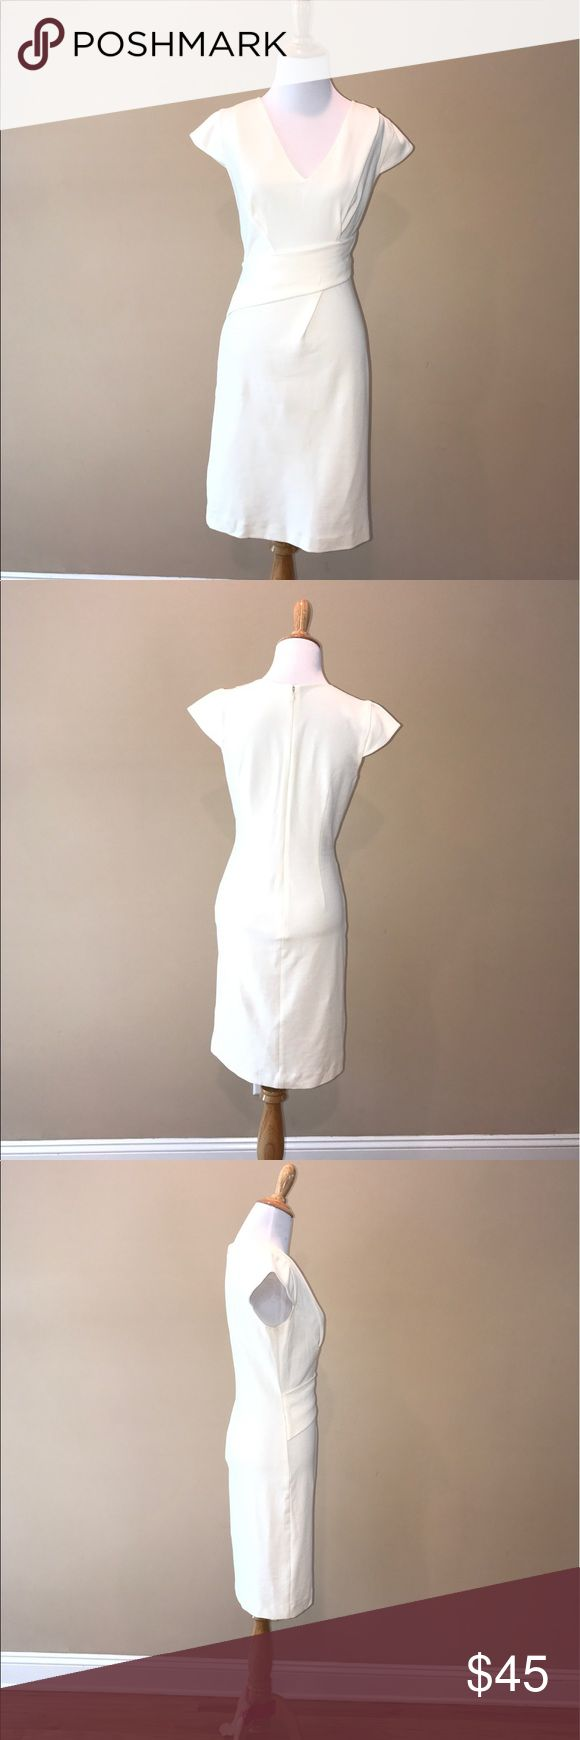 Rebecca Taylor cream cap sleeve dress size 6 Work appropriate cream Rebecca Taylor dress size 6. Faux wrap front with v neck and cap sleeves.  Concealed back zipper. Bust 32 inches waist 28 inches hips 36 inches. Dress length 37 inches. Fabric 80% cotton 15%nylon 5%polyurethanes. One small stain on back shown in photo. No trades but offers are welcome. Rebecca Taylor Dresses